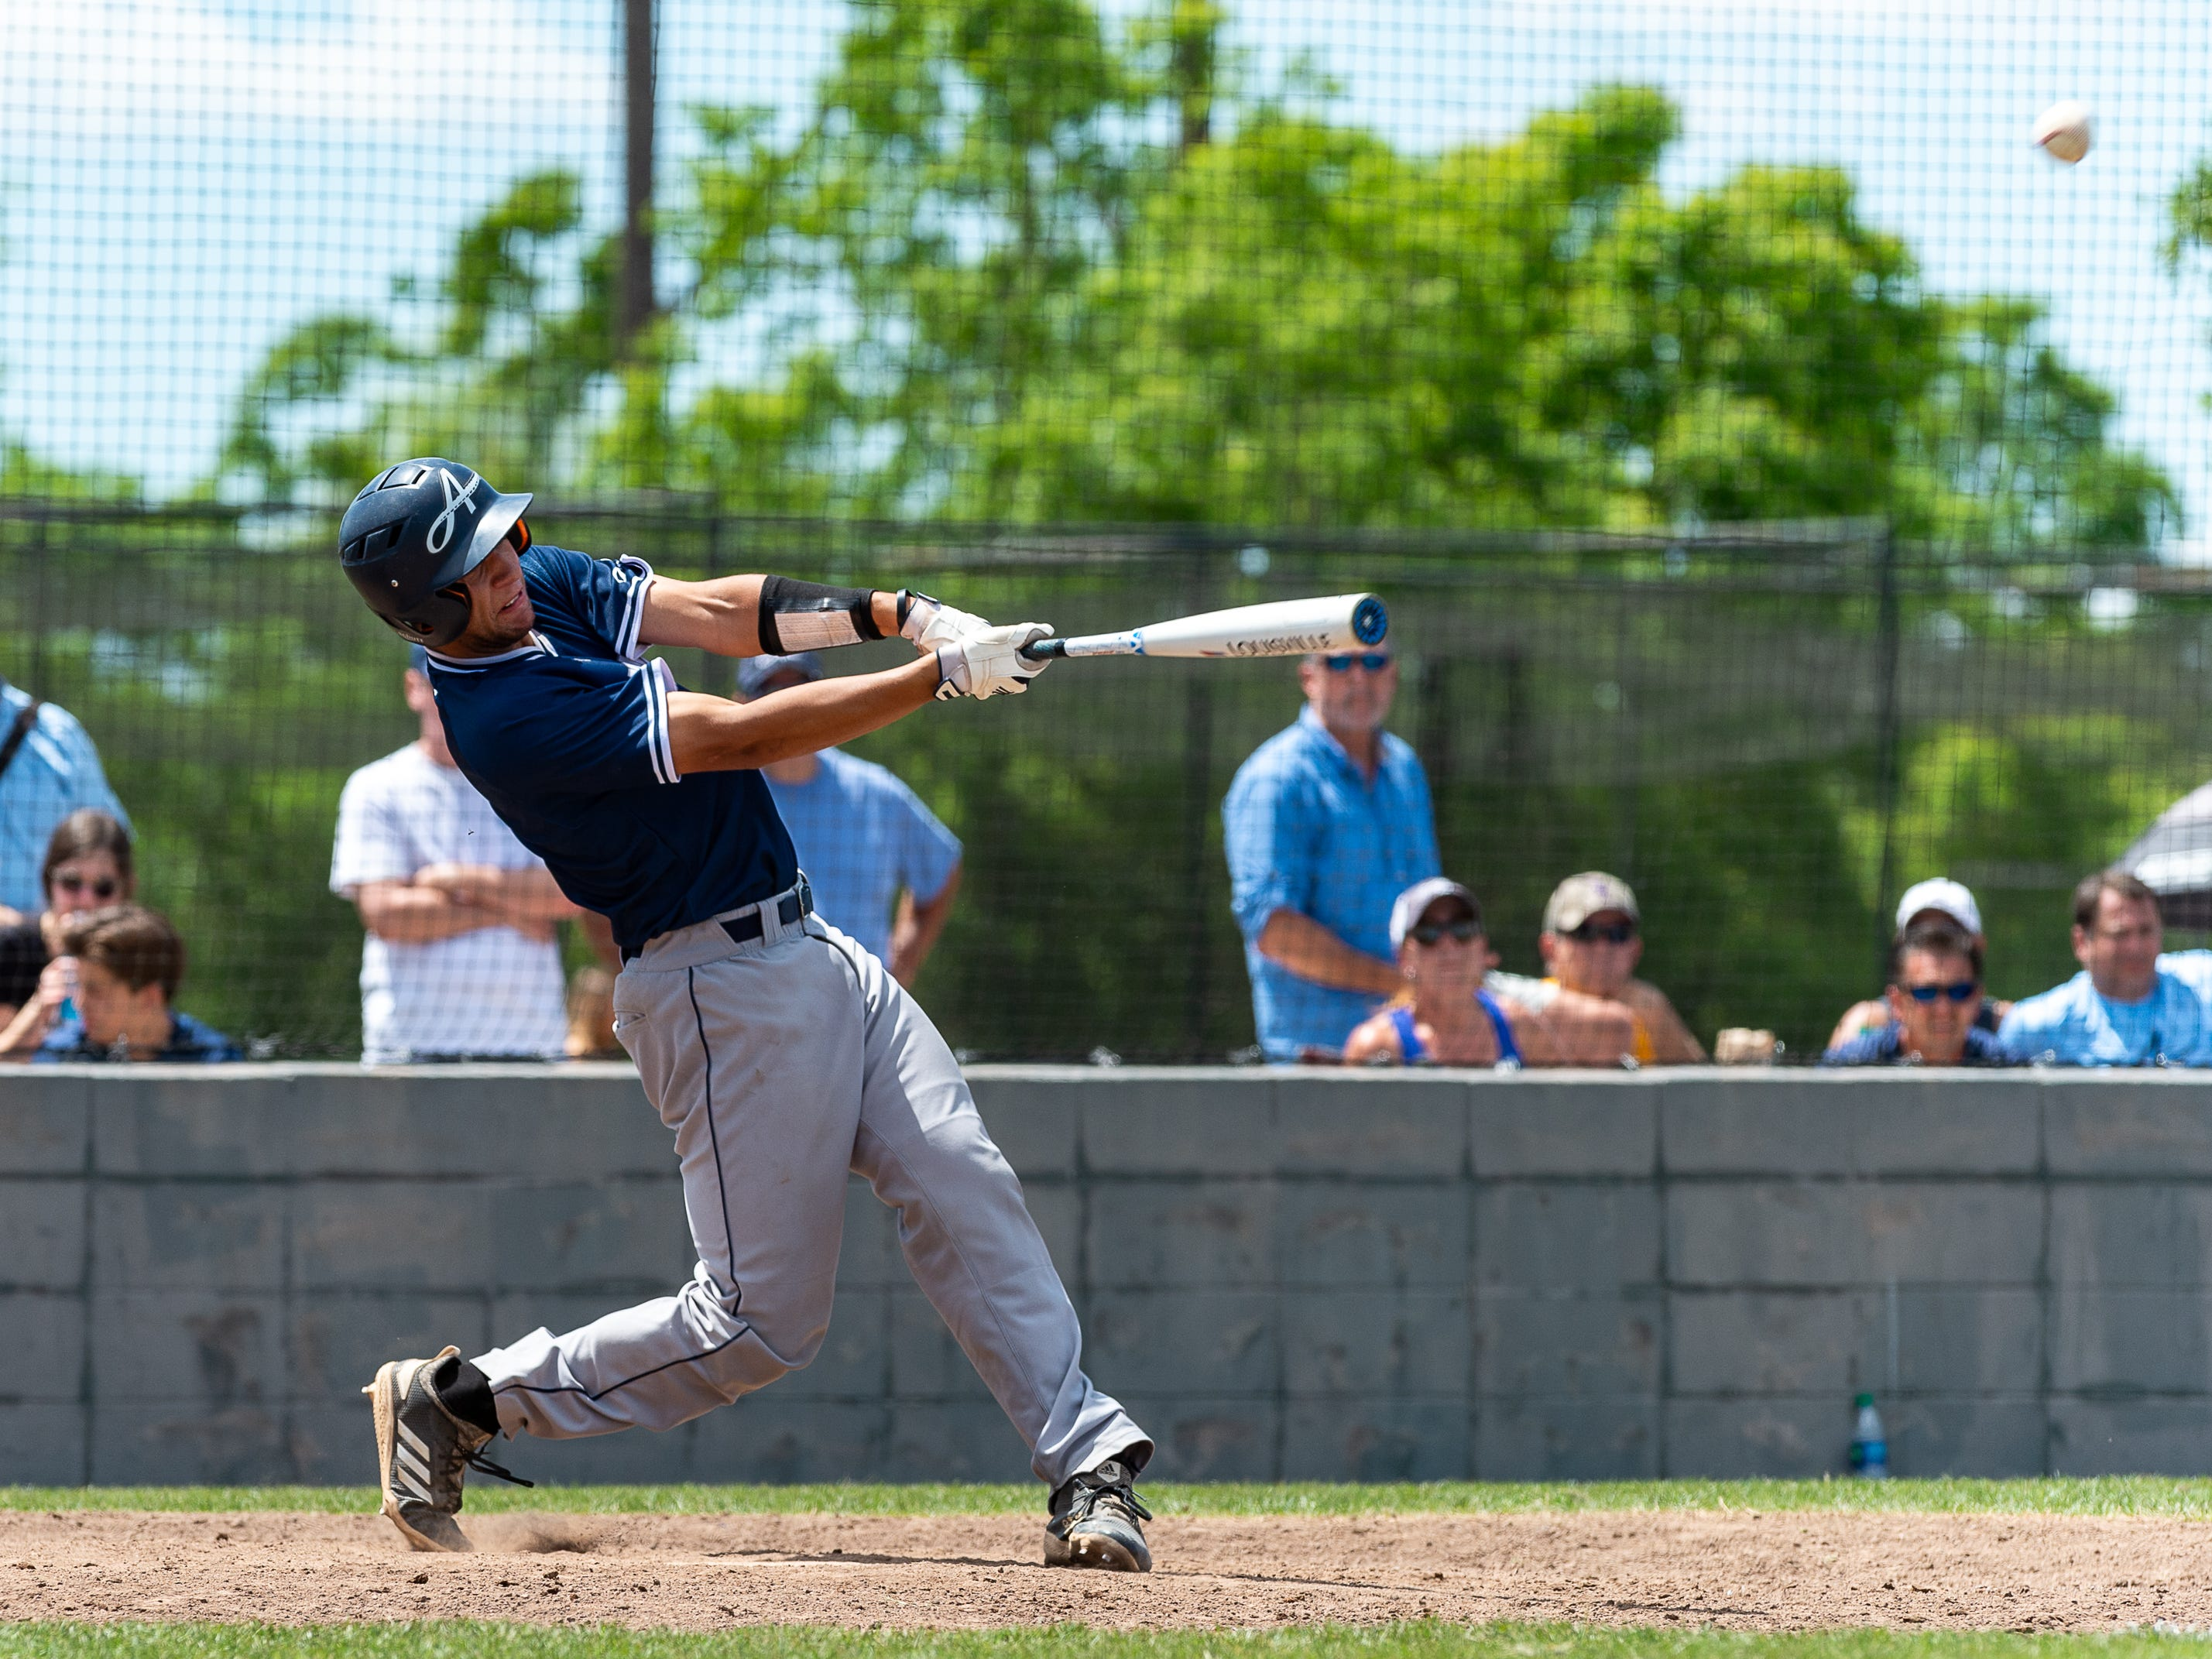 Austin Arceneaux at the plate as the Ascension Blue Gators take on Holy Savior Menard in game two of the semi final round of the LHSAA playoffs. Sunday, May 5, 2019.